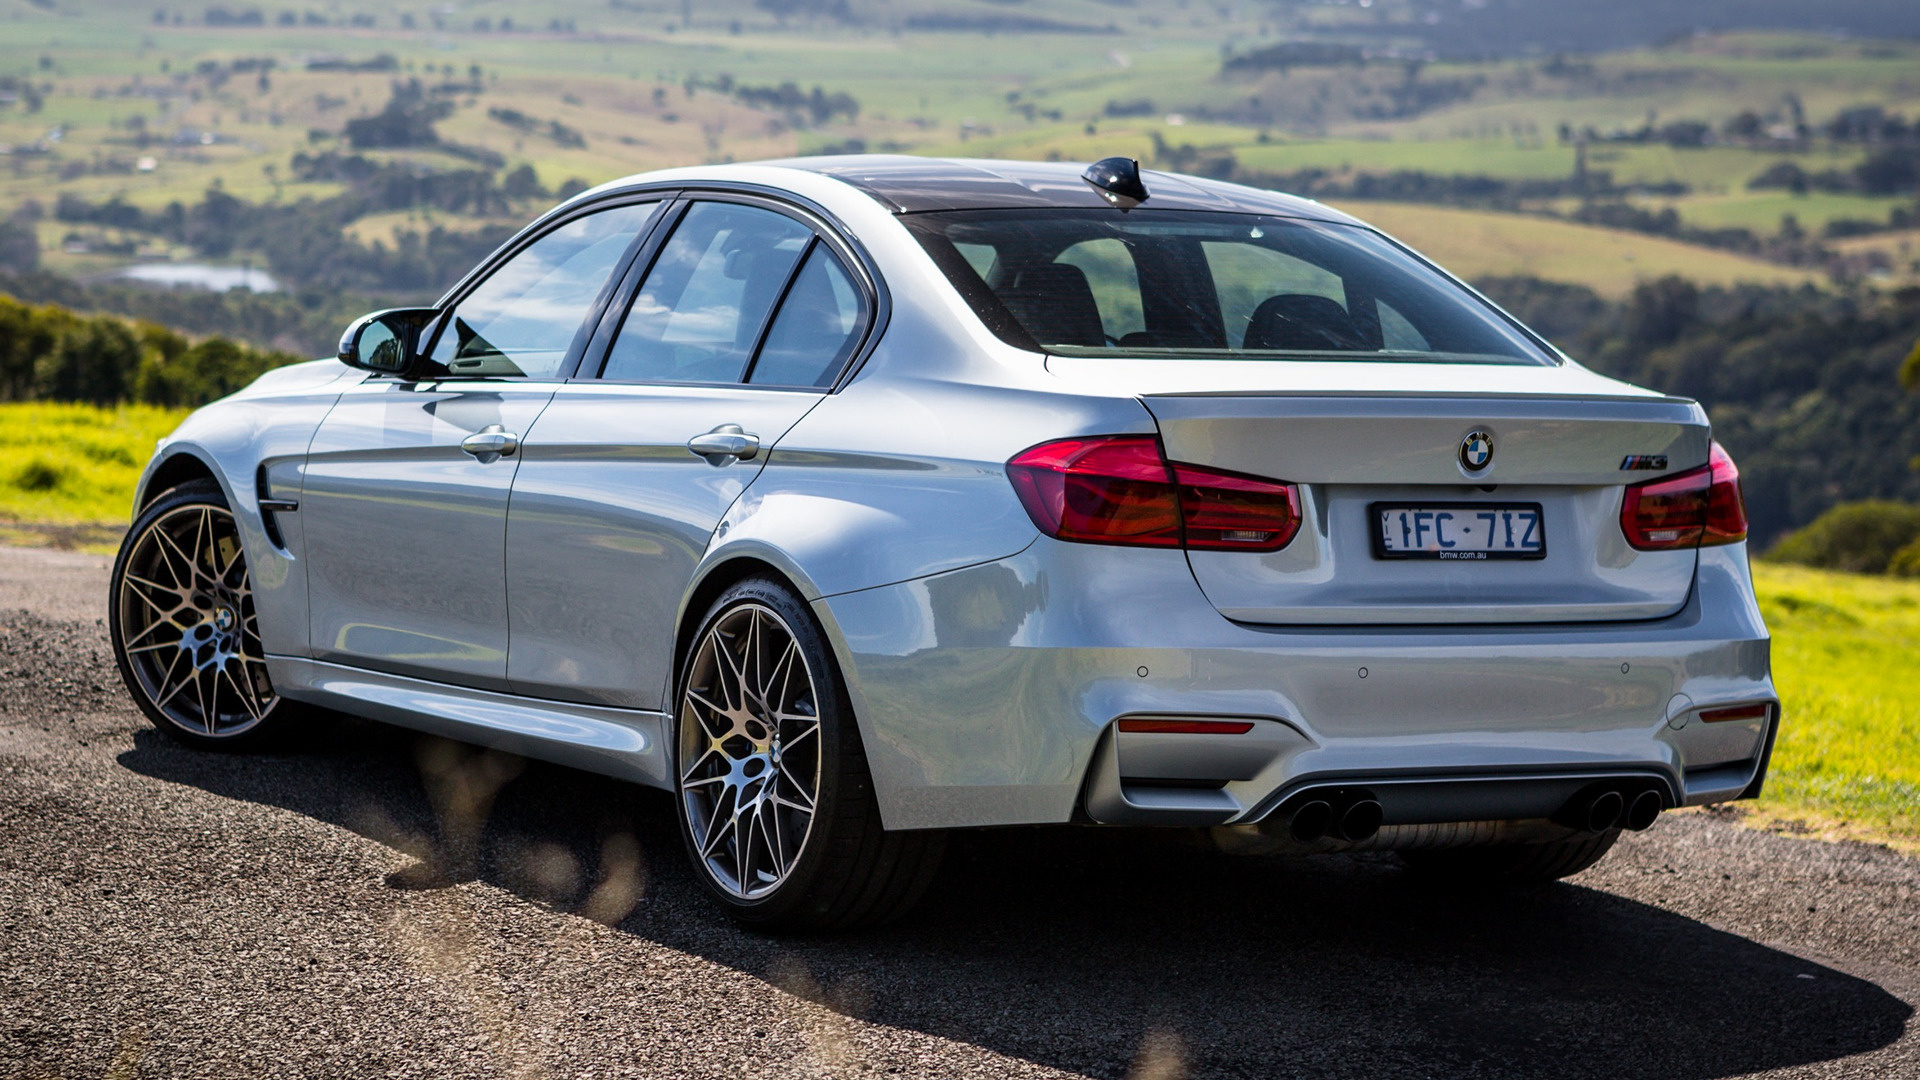 bmw m3 competition package (2016) au wallpapers and hd images - car